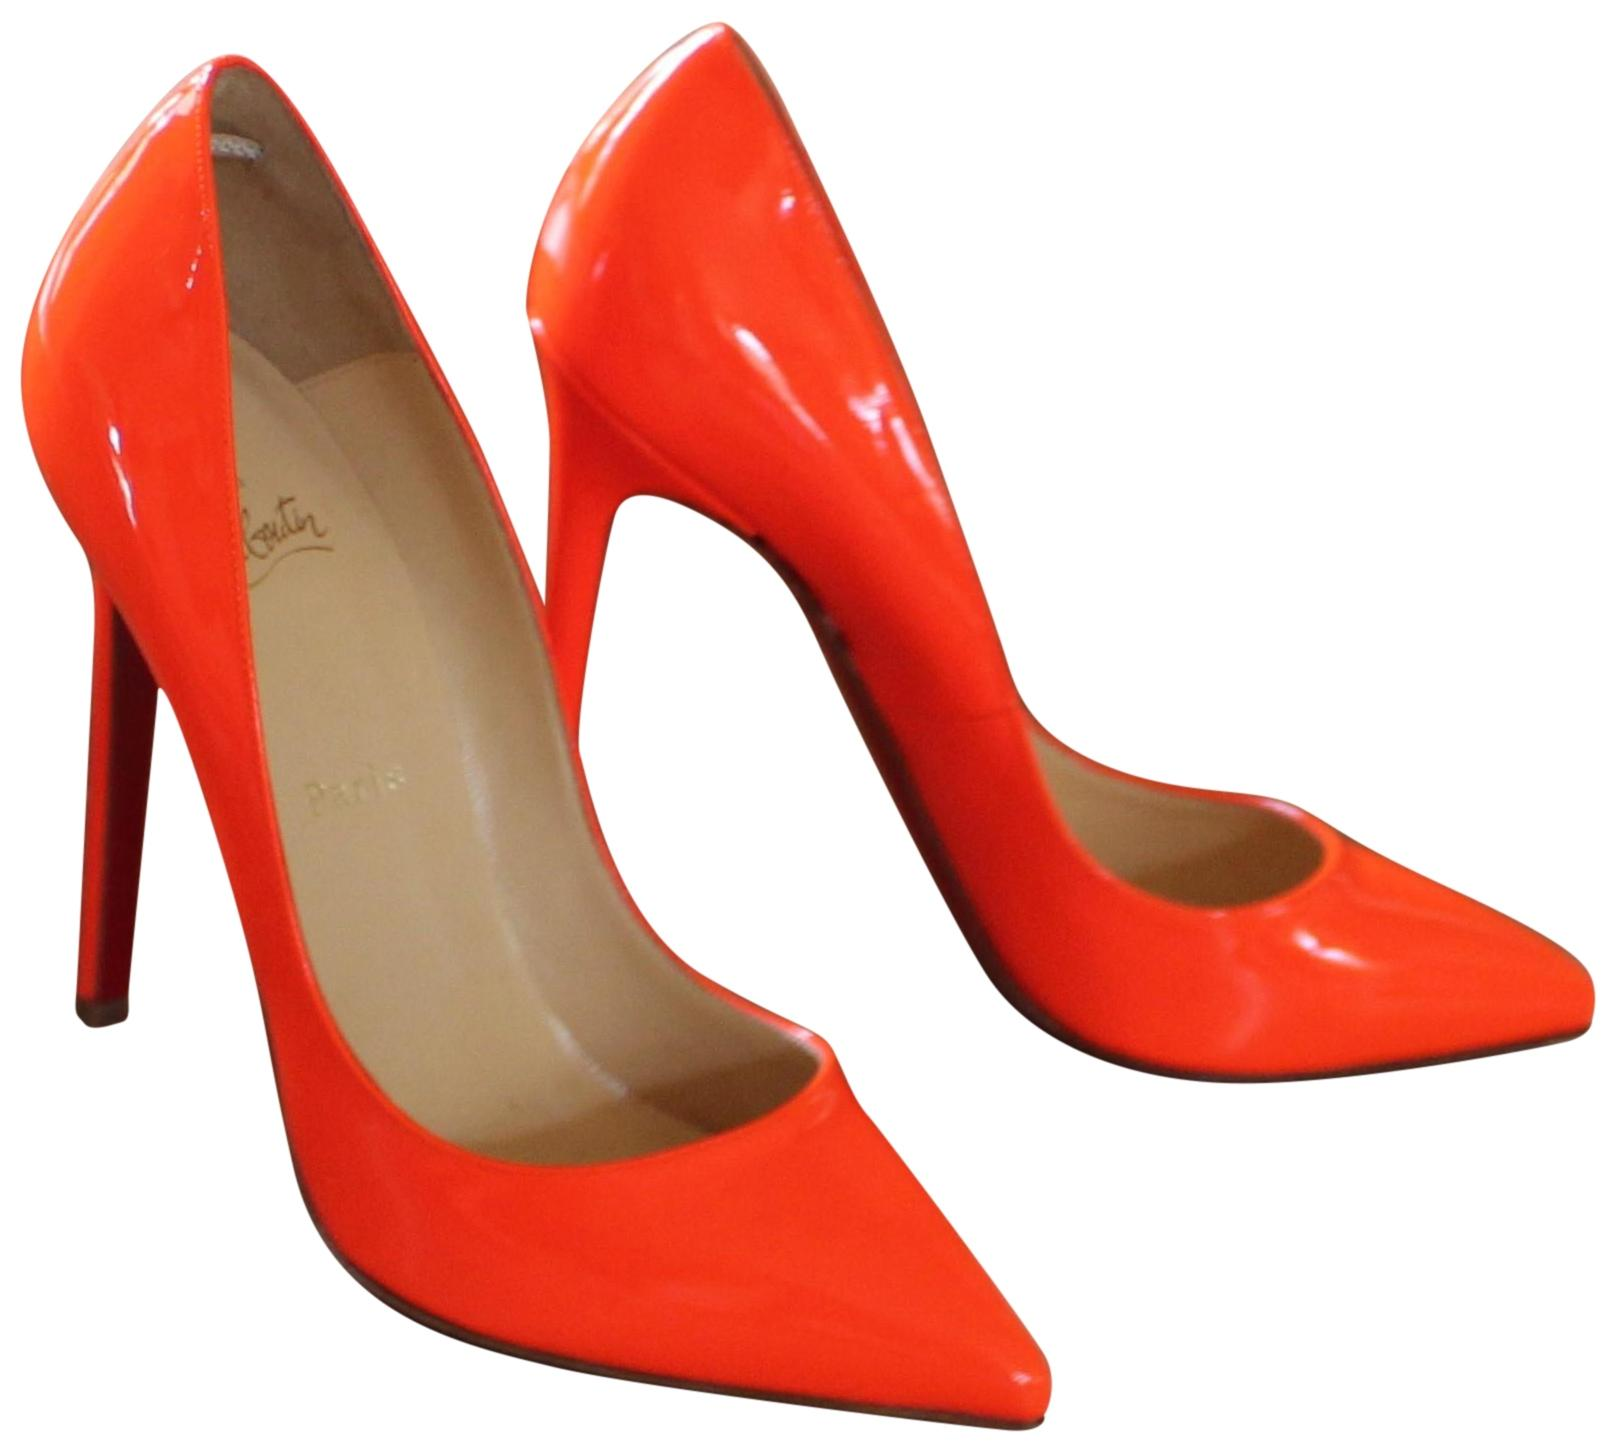 b11d2ac351c1 ... coupon code for christian louboutin neon patent patent leather pointed  toe so kate orange pumps cabab